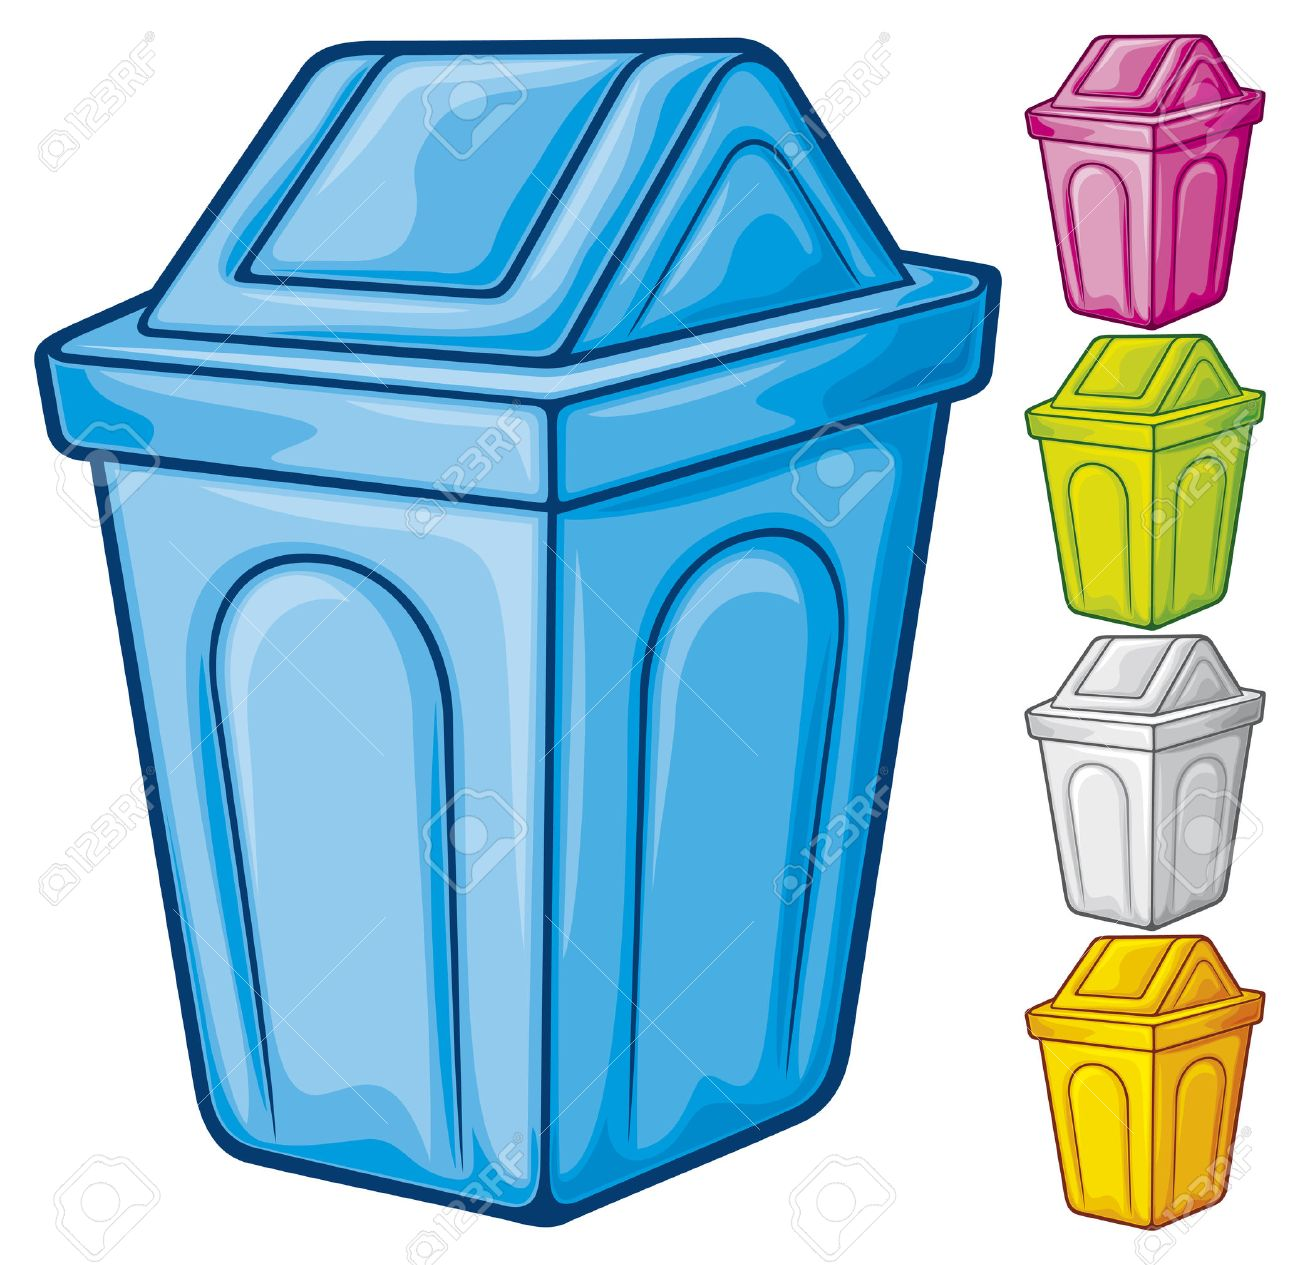 22,330 Trash Can Cliparts, Stock Vector And Royalty Free Trash Can ...